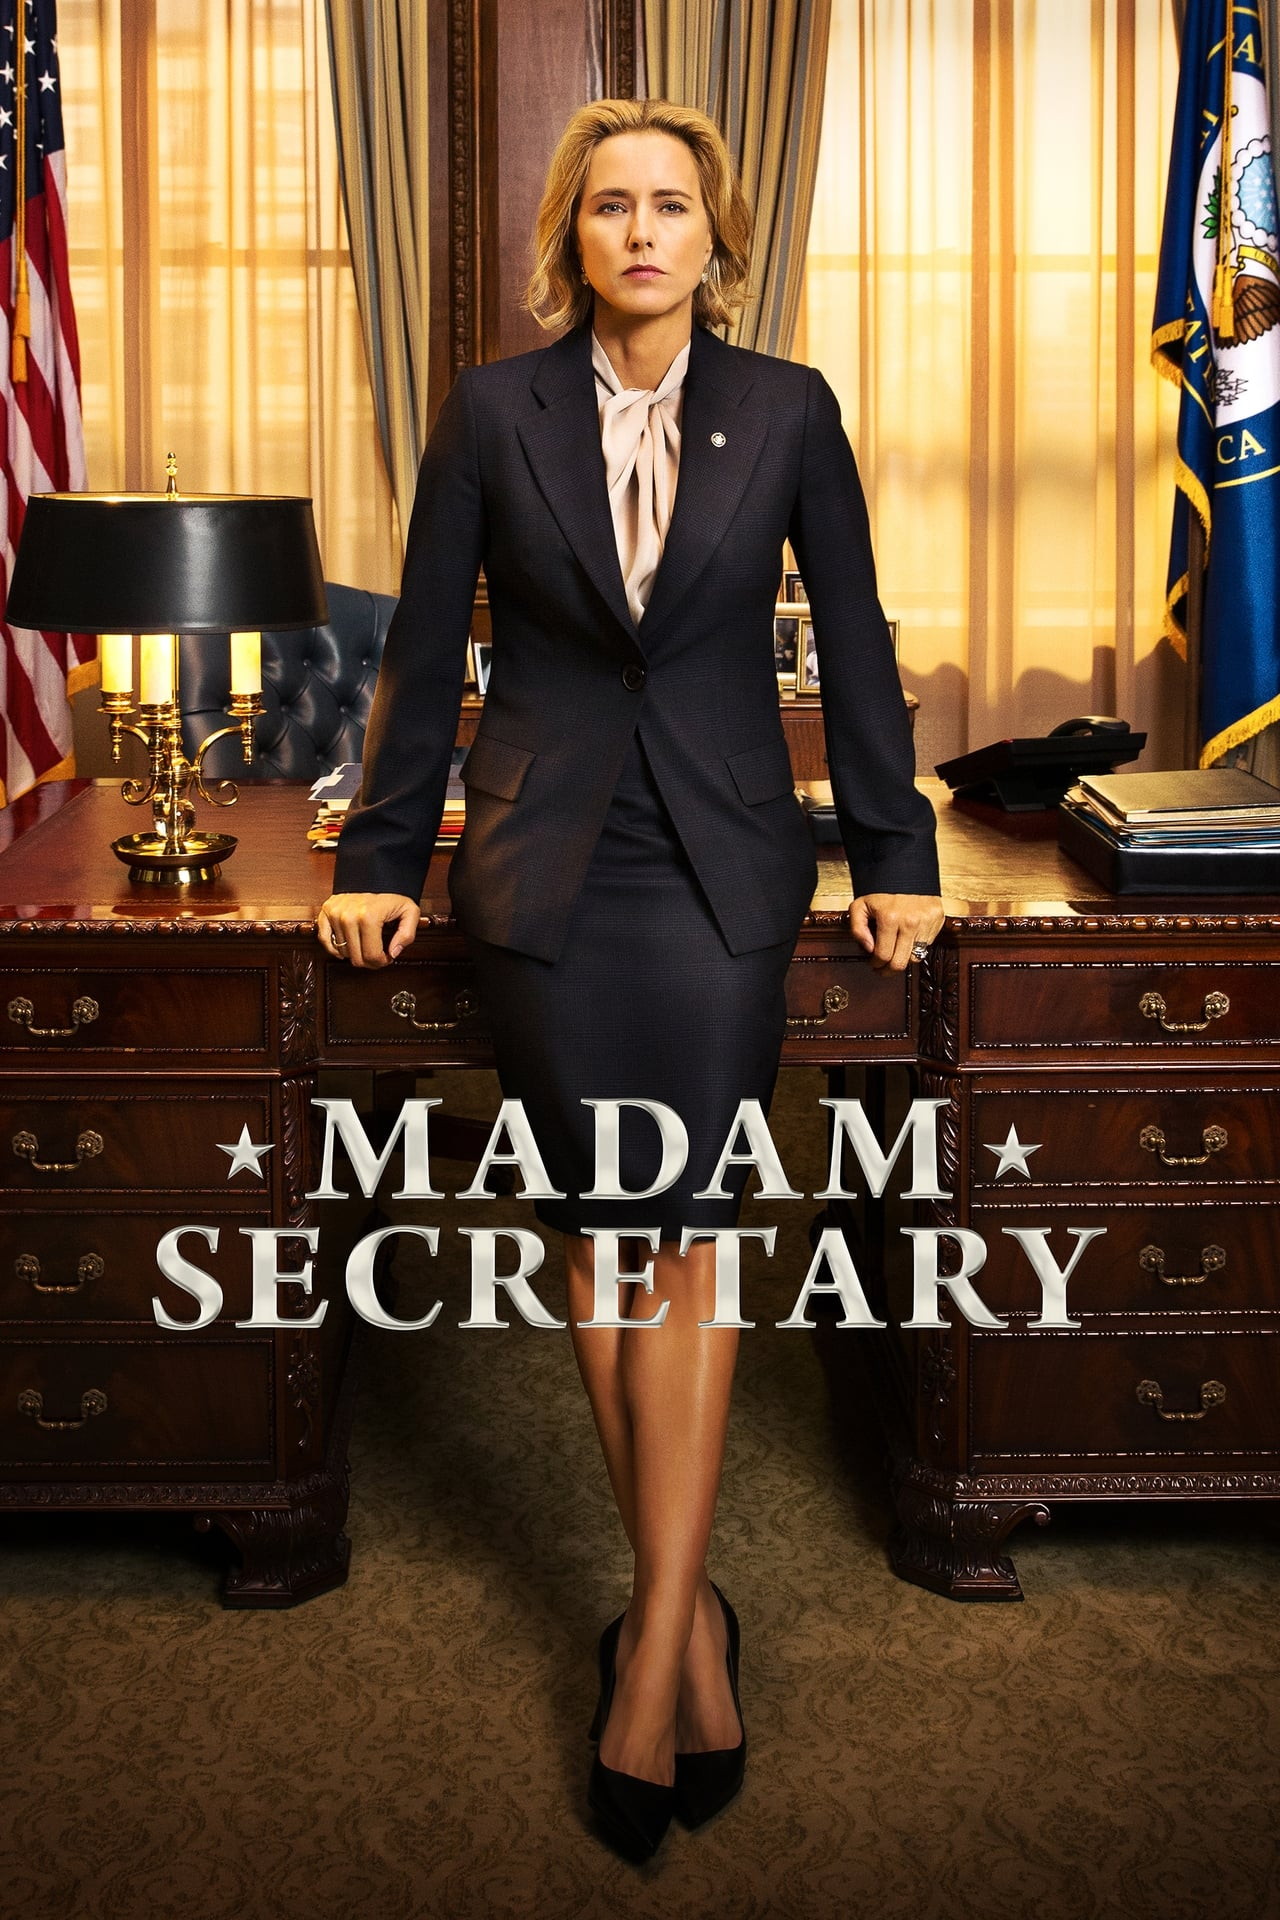 Madam Secretary Season 5